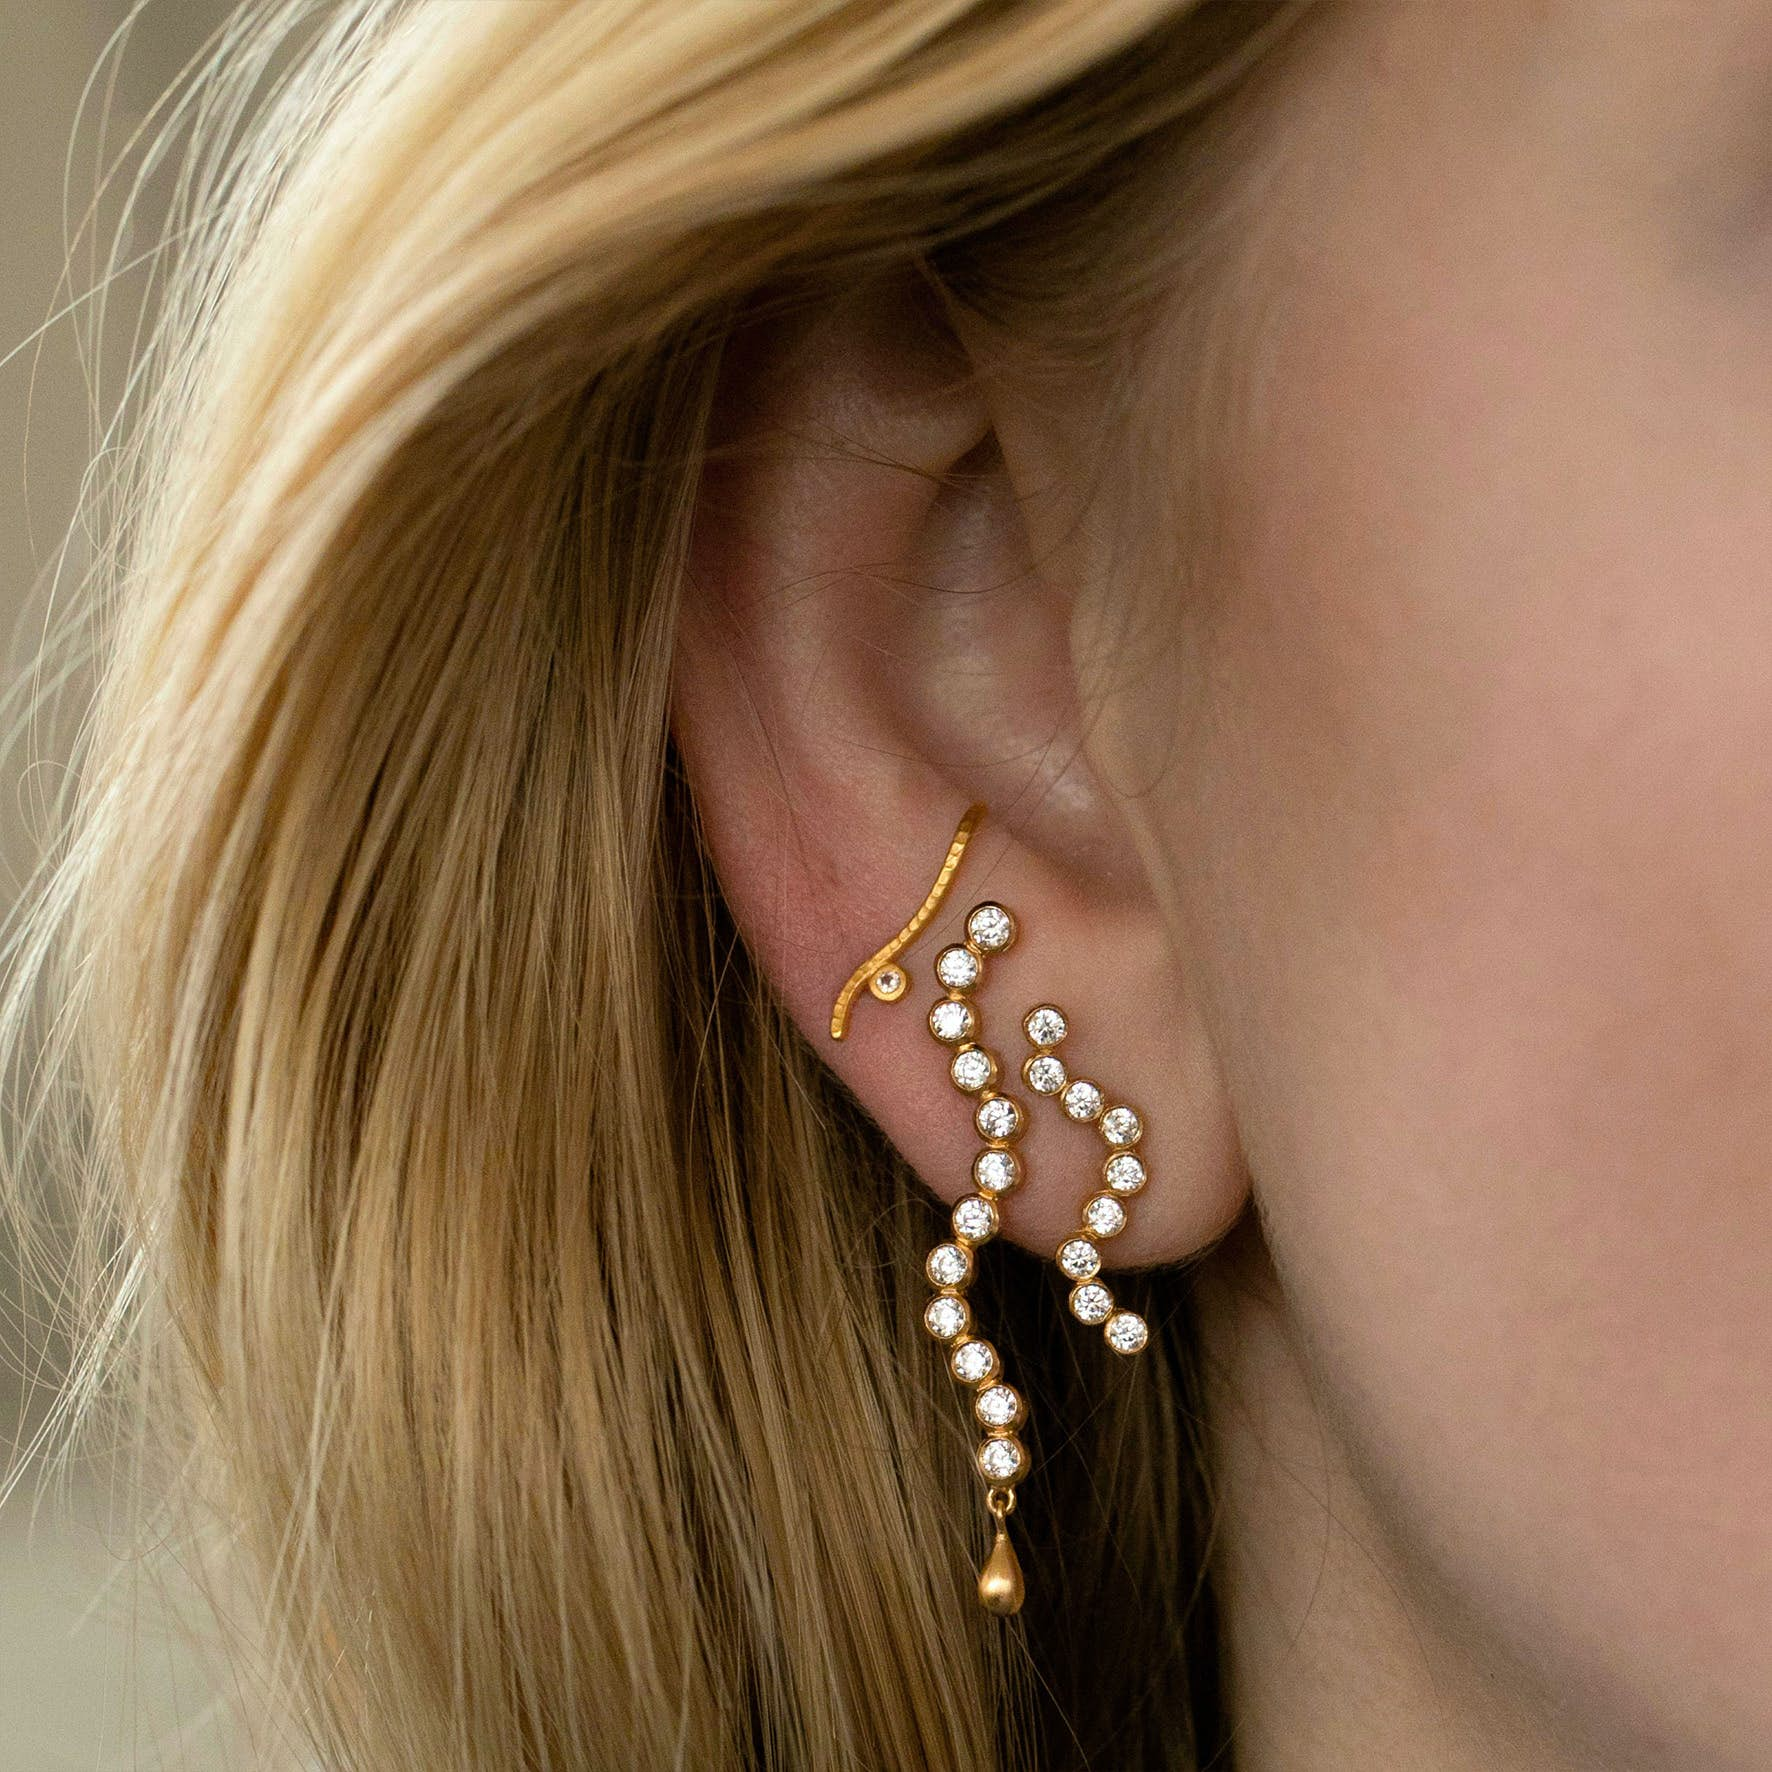 Midnight Sparkle Long Earring - Right from STINE A Jewelry in Goldplated-Silver Sterling 925